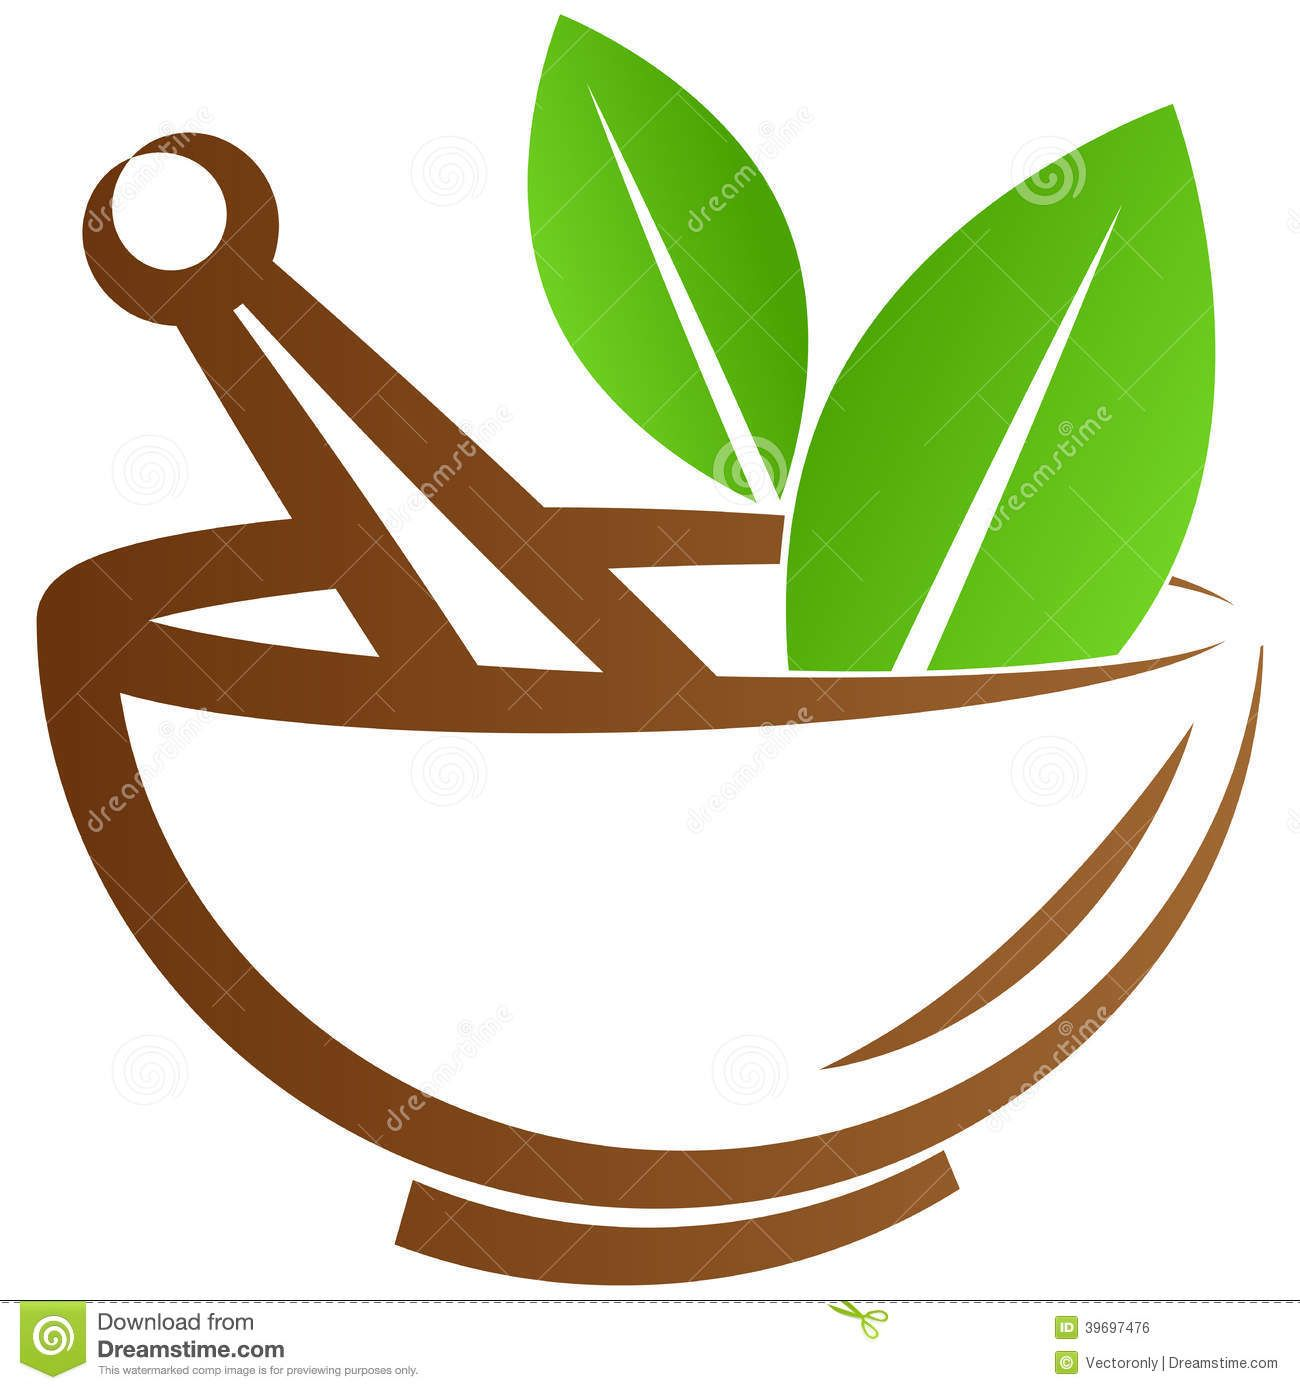 Mortar and pestle with leaves in it.. interesting | My Brand ... for Mortar And Pestle Drawing  67qdu